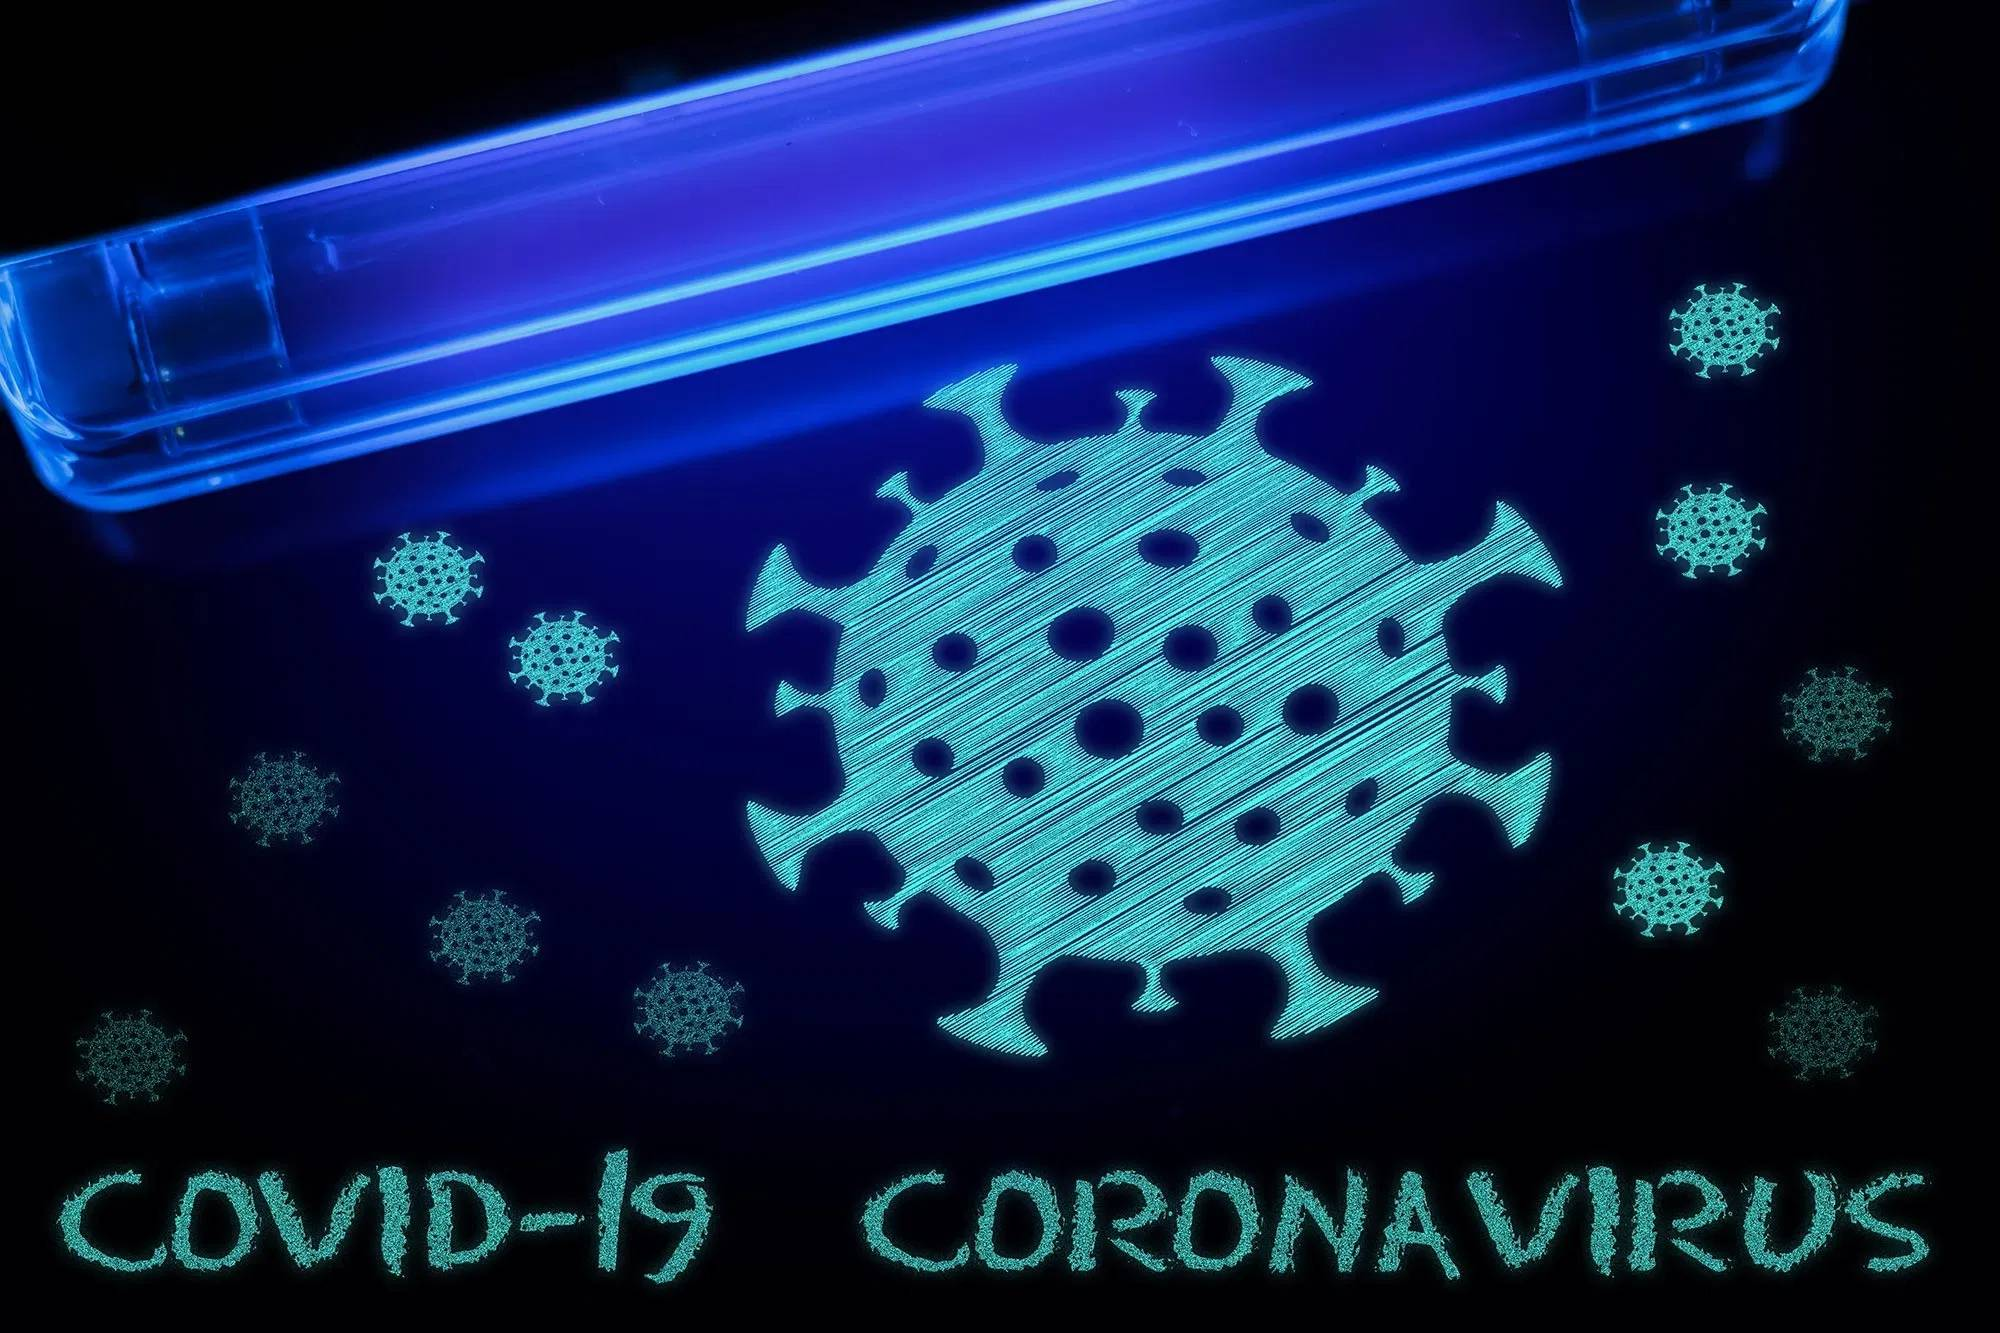 Using UV Light Sterilizer for Disinfection During Covid-19